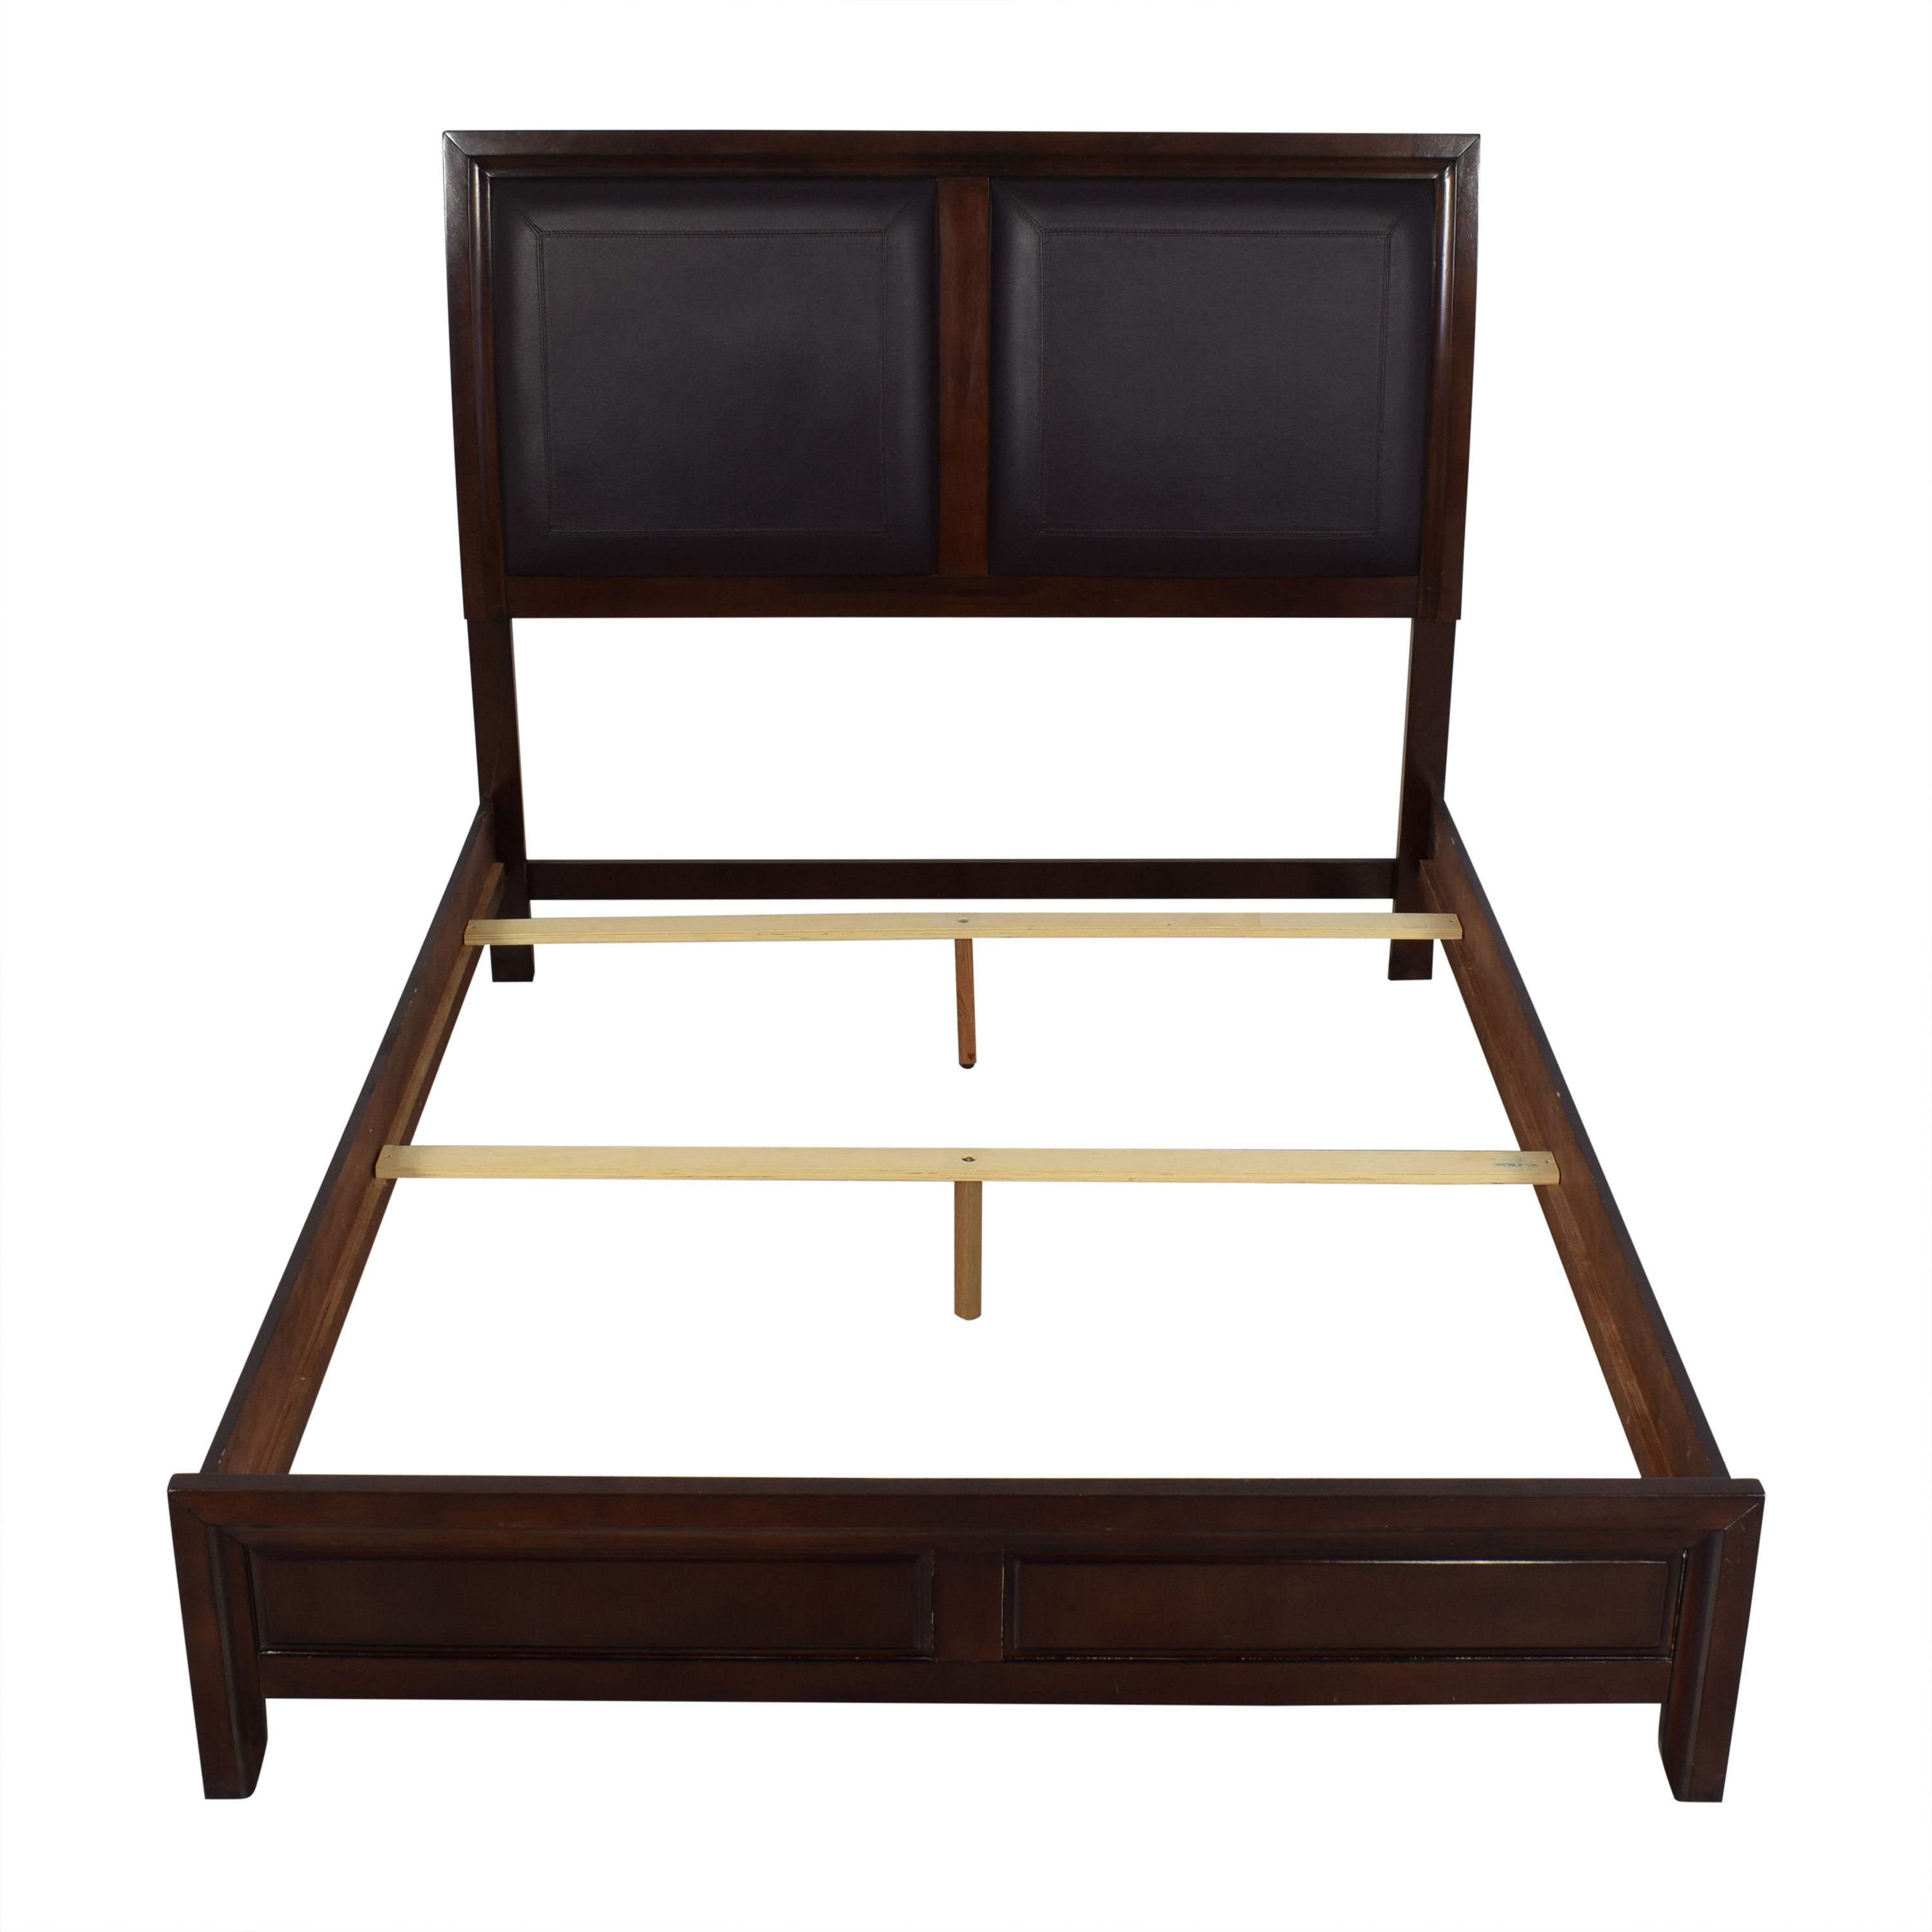 buy Raymour & Flanigan Rodea Cabernet Queen Bed Raymour & Flanigan Bed Frames